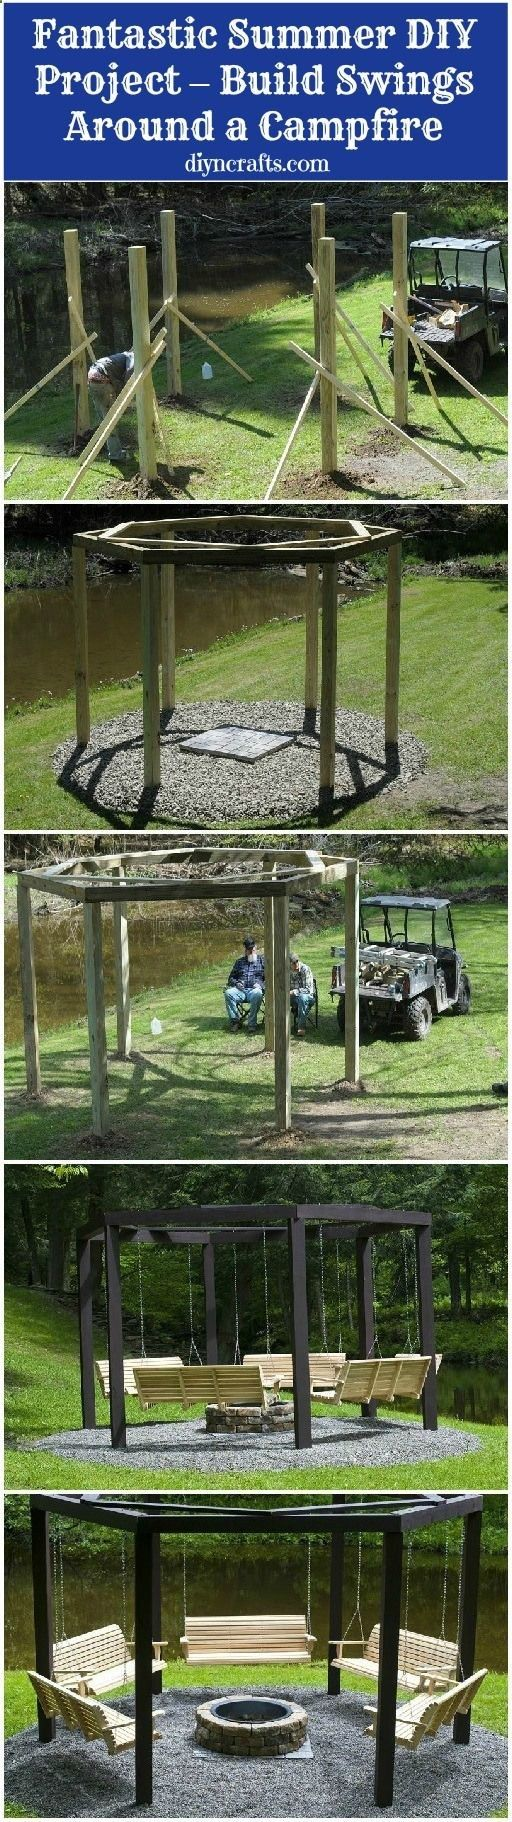 Fantastic Summer DIY Project  Build Swings Around a Campfire. --> I love this idea; wonder how itd look with maybe two single seats on one side, a love seat or triple bench on the second side, and making the last side suited for a hammock instead..